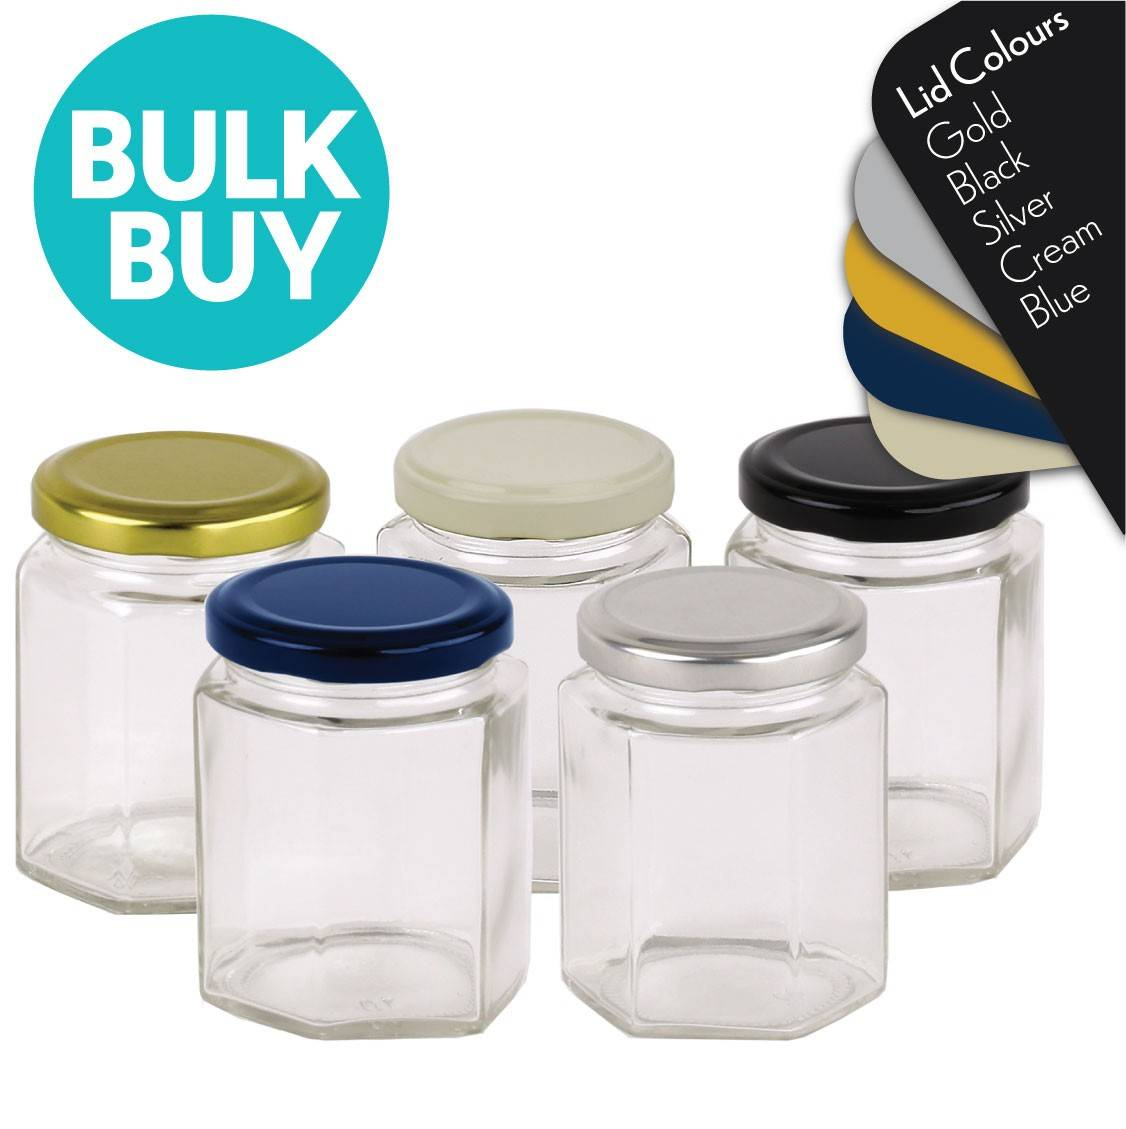 Glass Jar 280ml/400g Hex Glass Jars with Blue, Black, Gold, Cream or Silver Lid